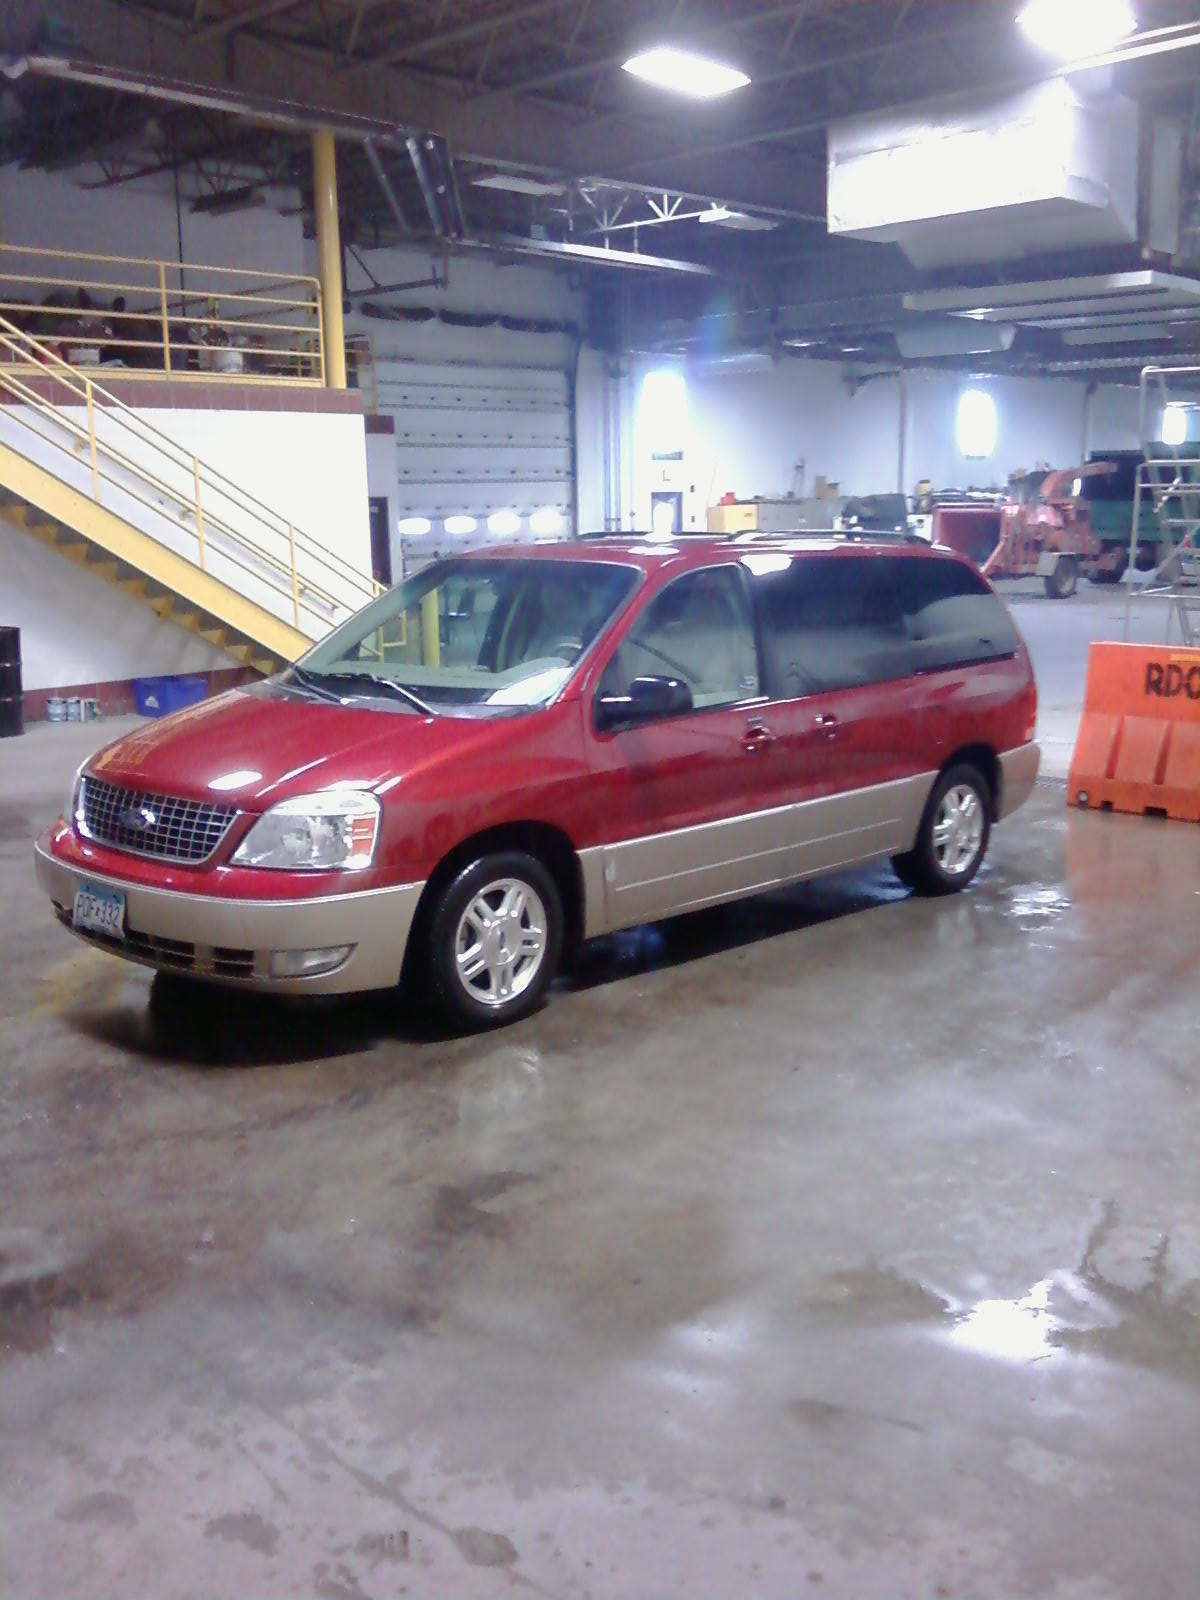 Good News Auto 2005 Ford Freestar Fuel Filter Location 132k New Battery Transmission 3 10 Regular Oil Changes Dvd Power Sliding Doors Leather Heated Seats 6 Disc Cd Changer